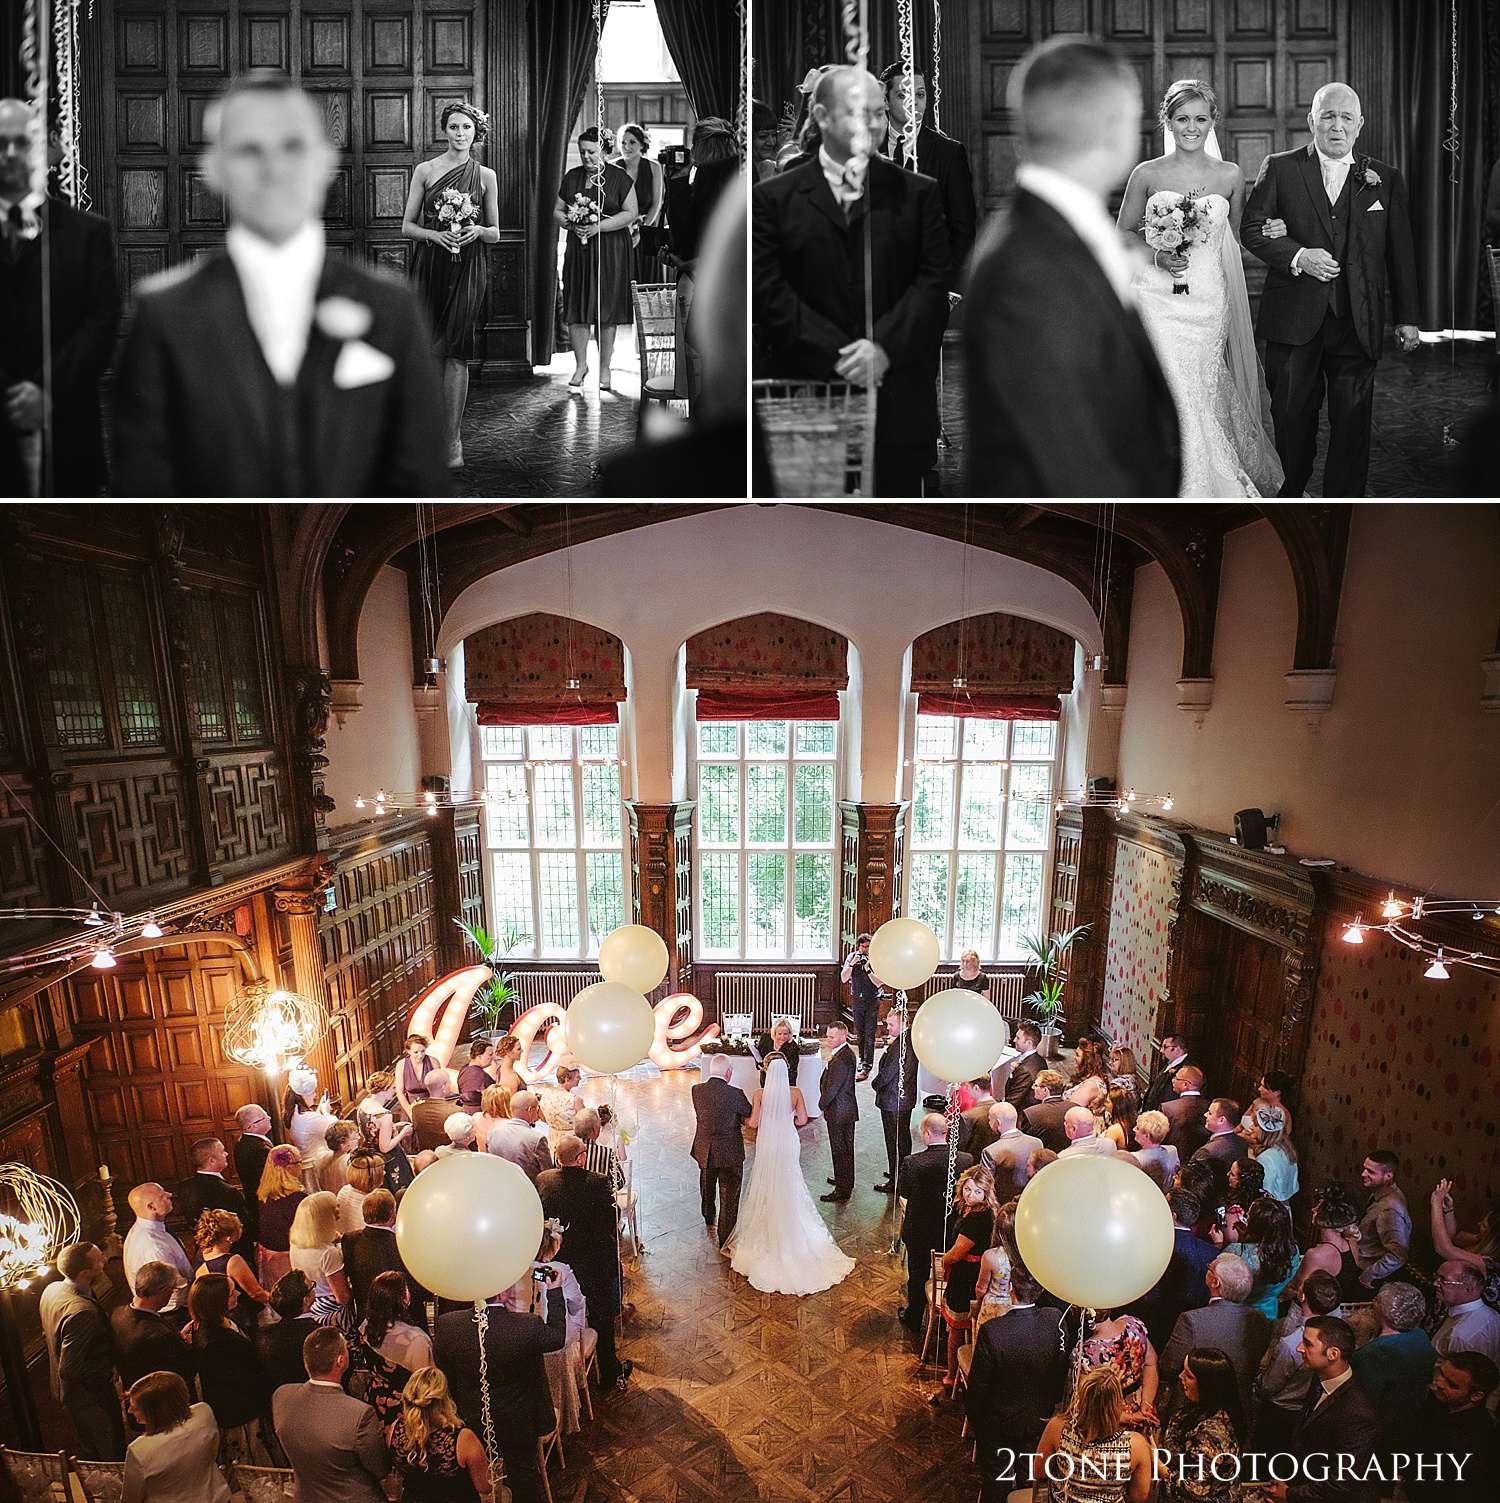 Wedding ceremony with balloon decorations at Jesmond Dene House in Newcastle by 2tone Photography www.2tonephotography.co.uk